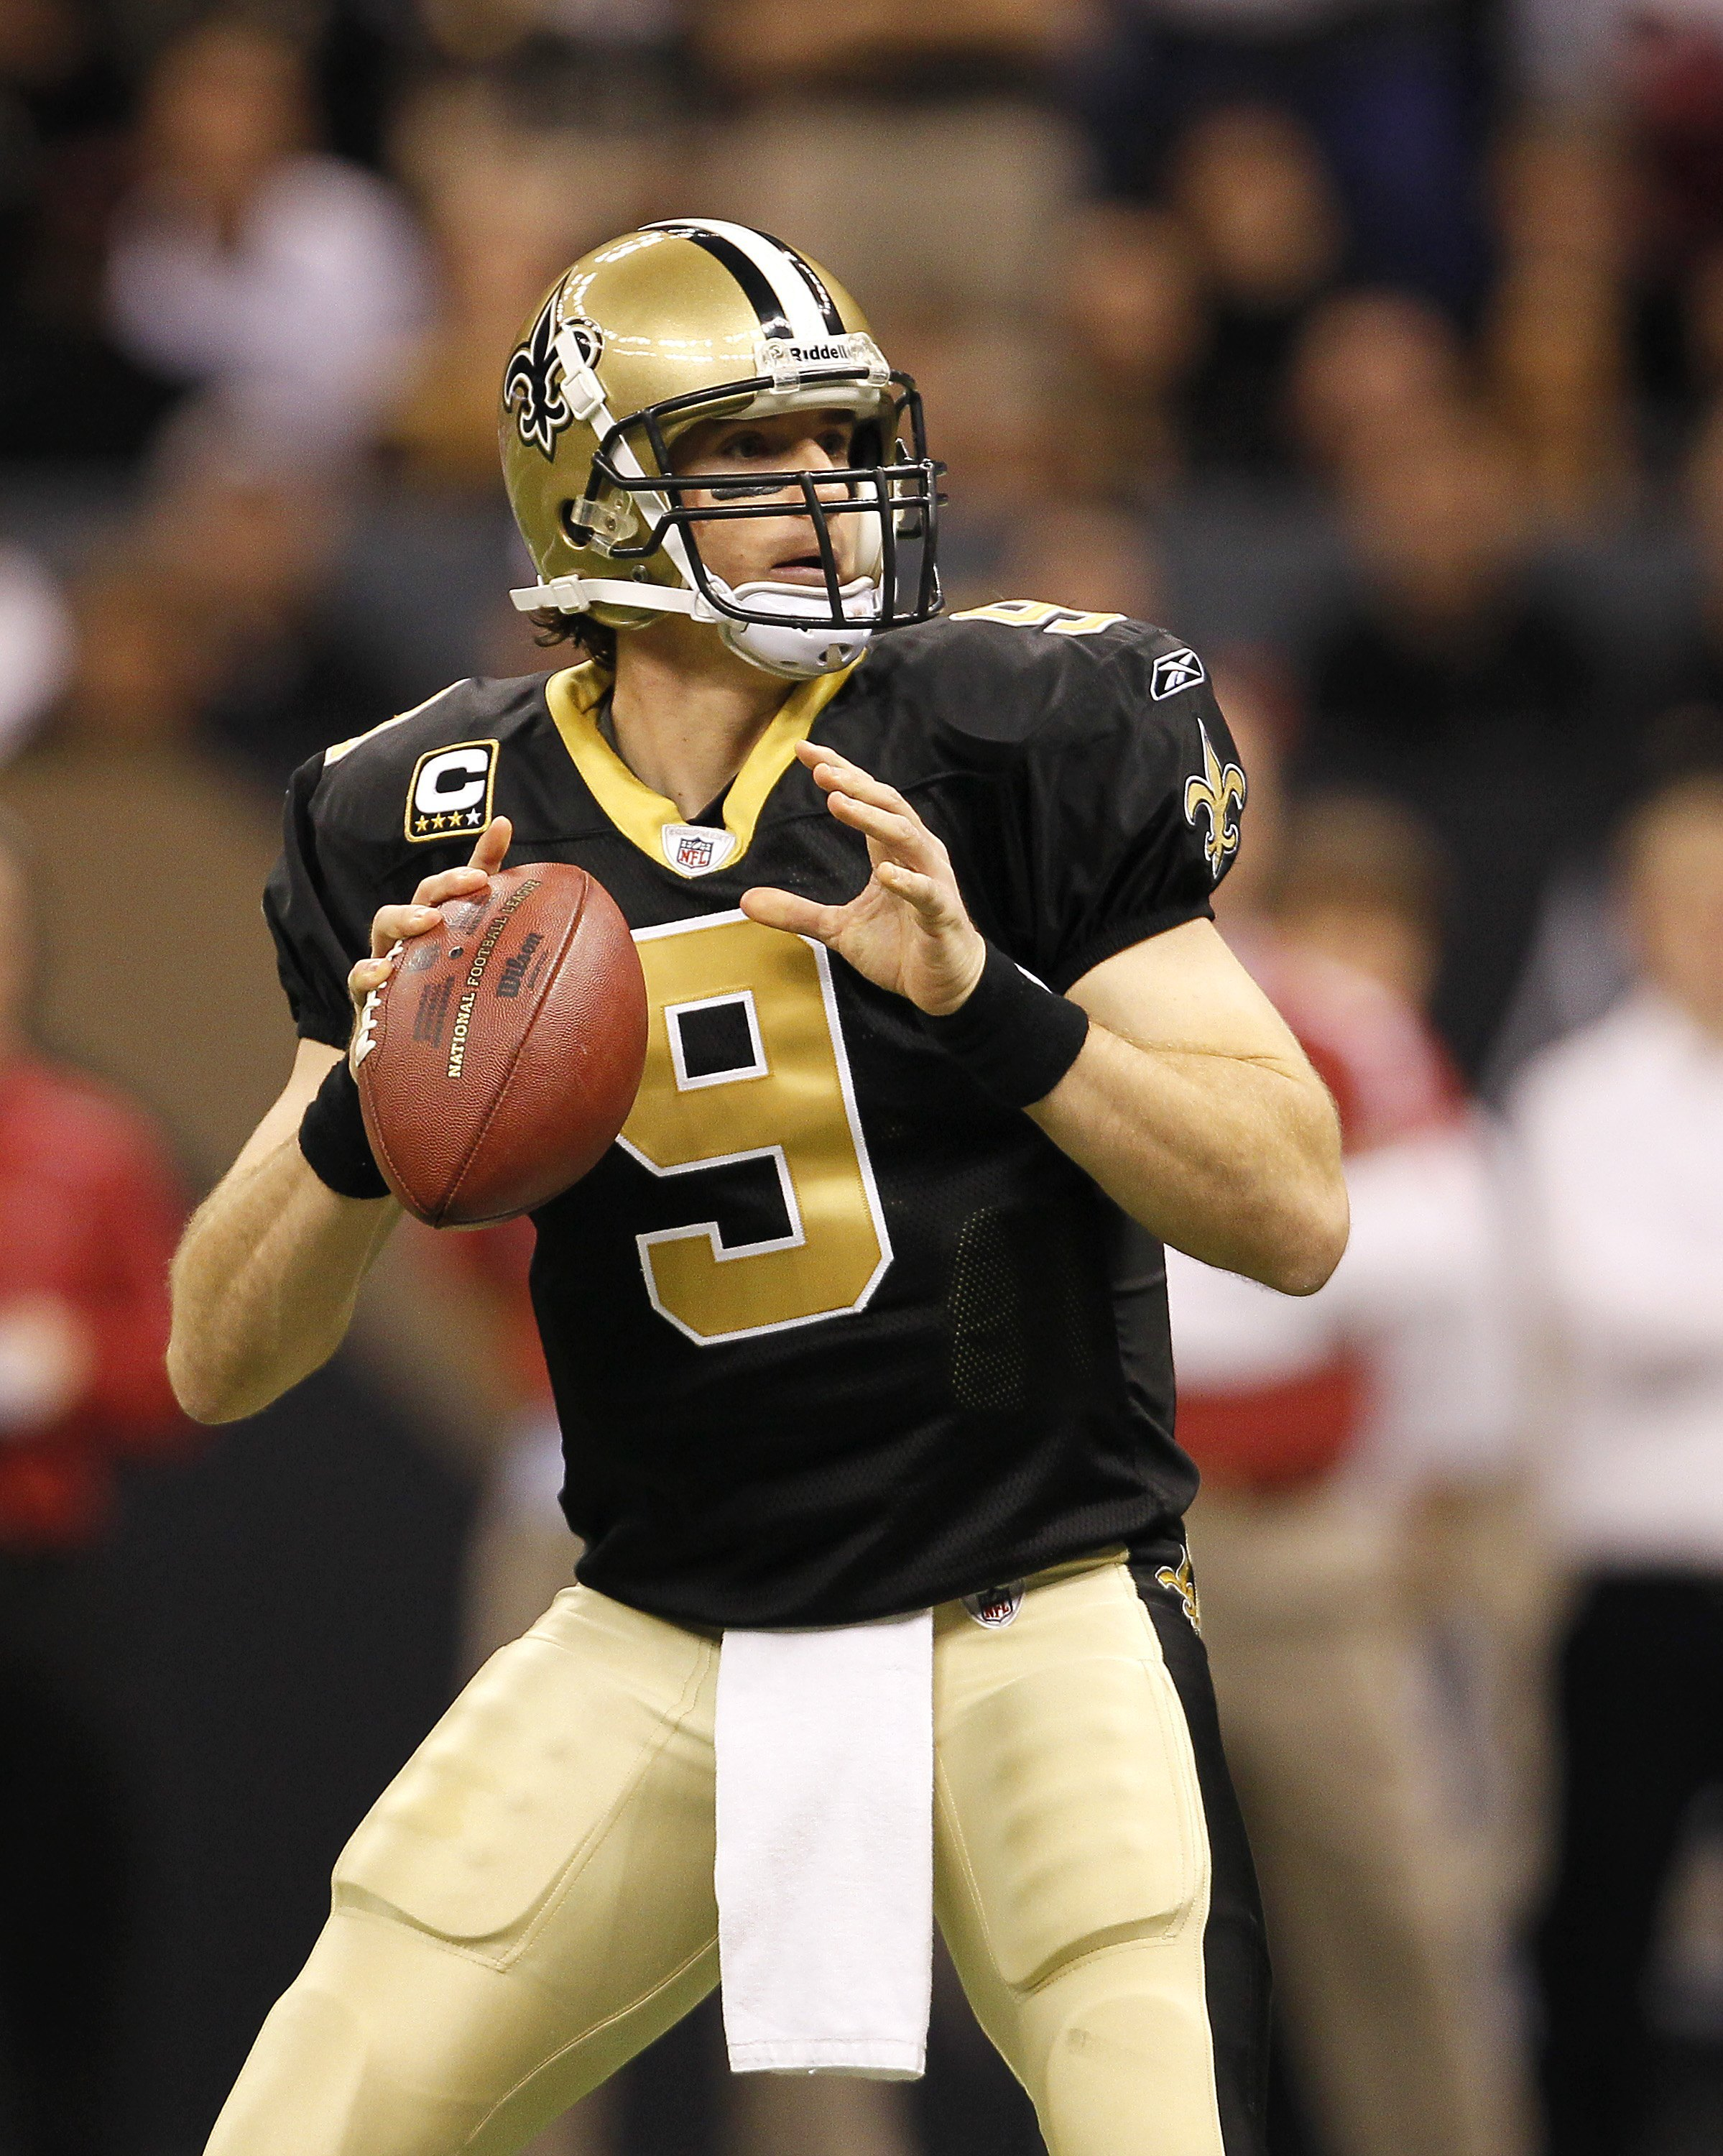 Drew Brees Wallpapers High Quality